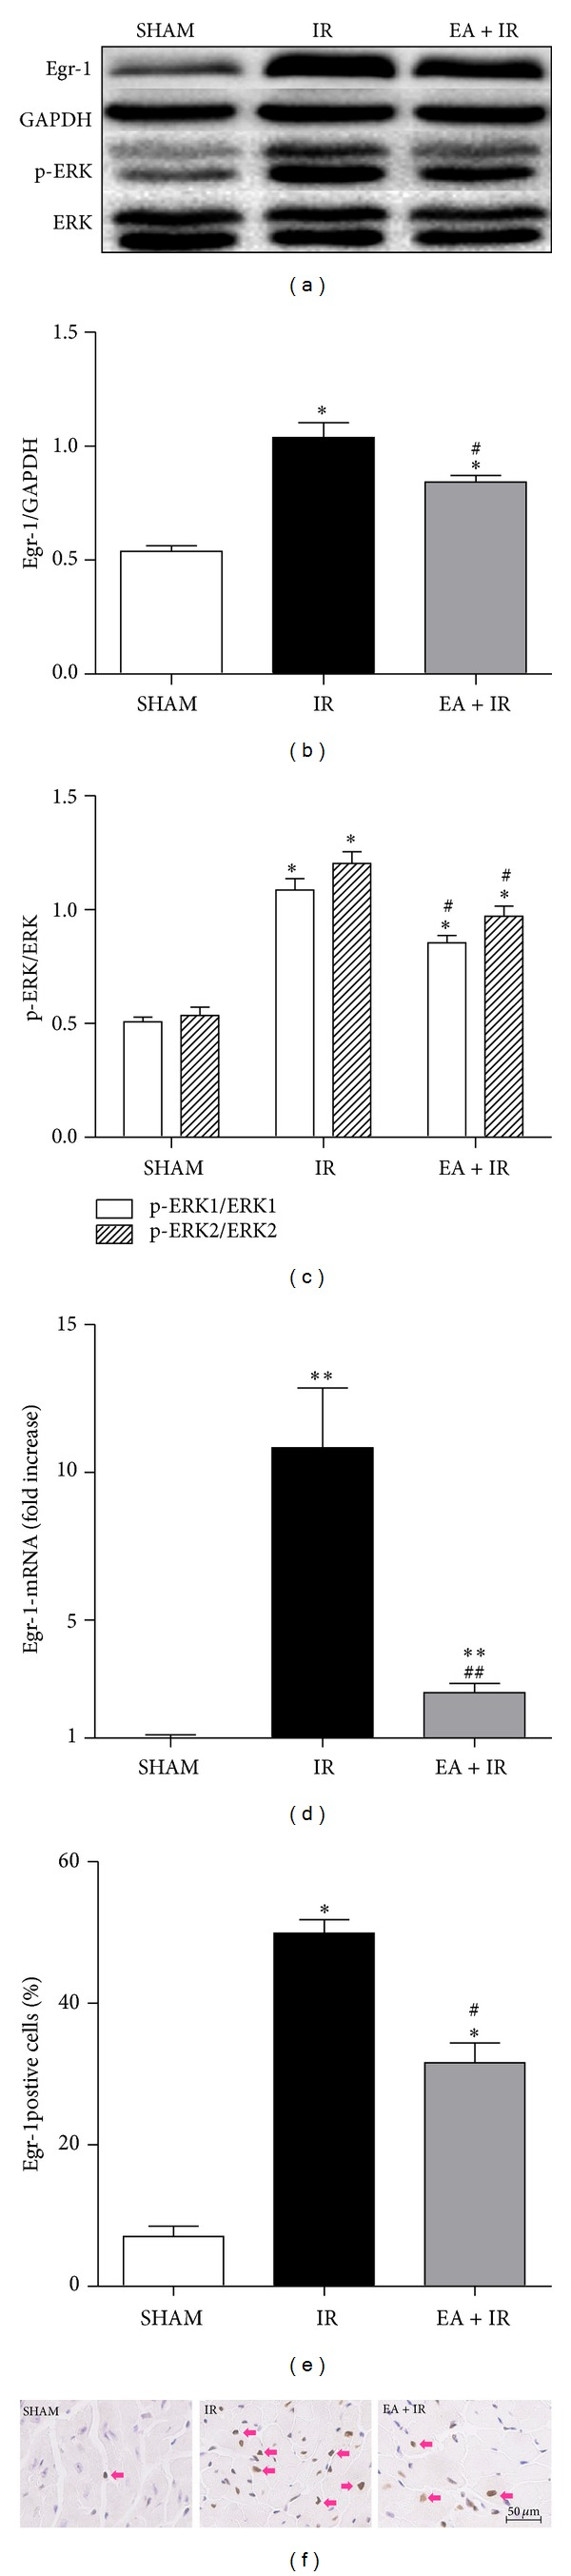 EA inhibited Egr-1 expression and ERK1/2 activation in myocardium undergoing myocardial I/R. Mice were divided into 3 groups: SHAM, IR (myocardial I/R), and EA + IR (EA stimulation was performed 30 min before myocardial I/R surgery and lasted for 30 min). After 3 h of reperfusion, the animals were sacrificed and the protein levels of Egr-1and p-ERK1/2 were measured by western blot (a) and densitometric analysis is shown in panel (b-c) ( n = 3/group). The mRNA levels of Egr-1 in these three groups are represented as the relative fold increase versus sham controls (d, n = 3/group). Immunohistochemical staining of Egr-1 was performed and the quantitation results of Egr-1positive cells were shown in panel (e). Representative images were shown in panel (f). Pink arrows indicate Egr-1positive cells. Scale bar = 50 μ m. * P